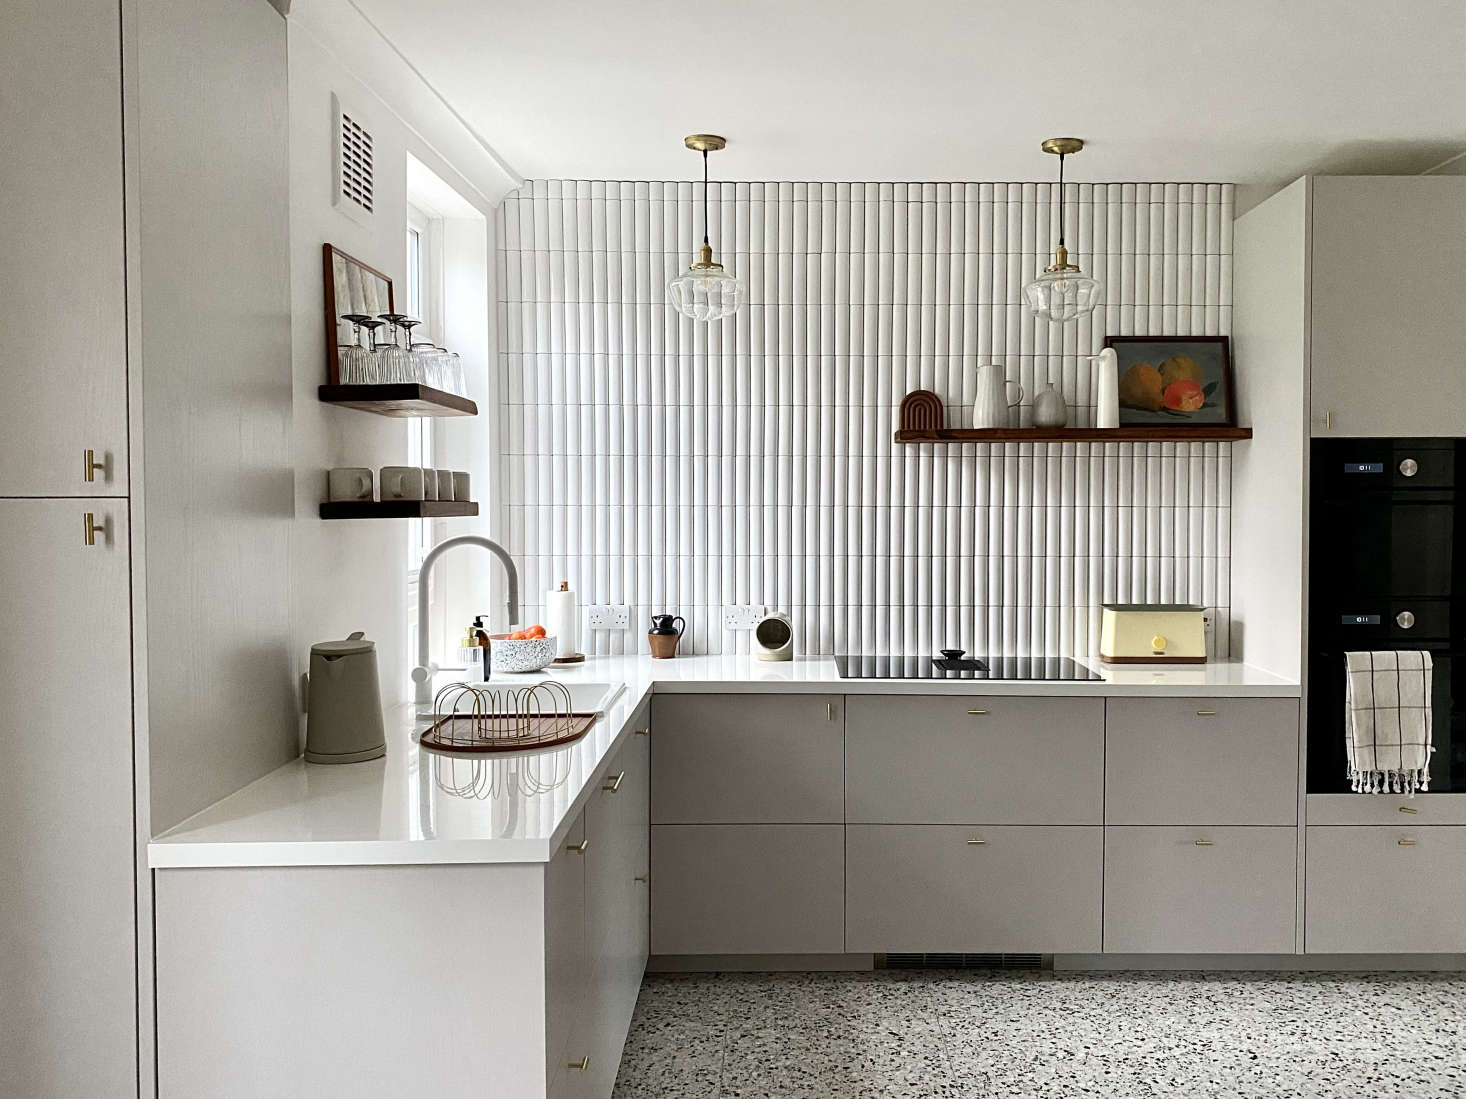 Another high/low kitchen, thanks to Ikea base cabinets and fronts by Naked Doors. The homeowners here also saved by choosing Ikea appliances. Photograph by Ferren Gipson, from Kitchen of the Week: An American In London Creates Her Dream Ikea Hack Kitchen.